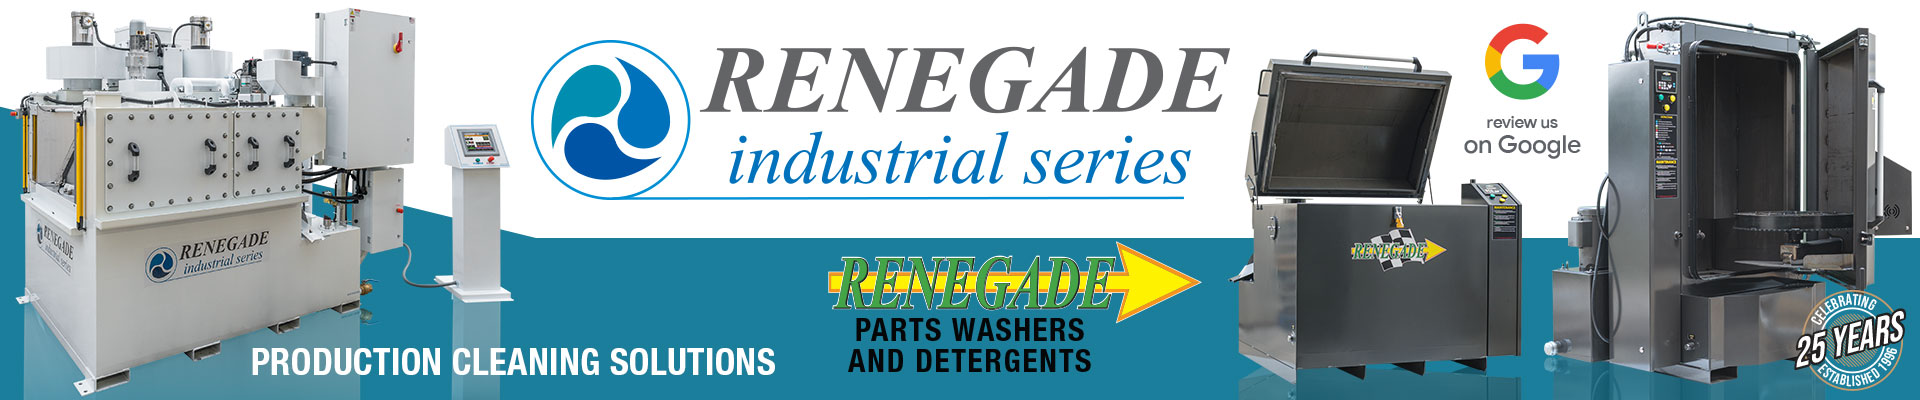 Renegade Parts Washers and Detergents